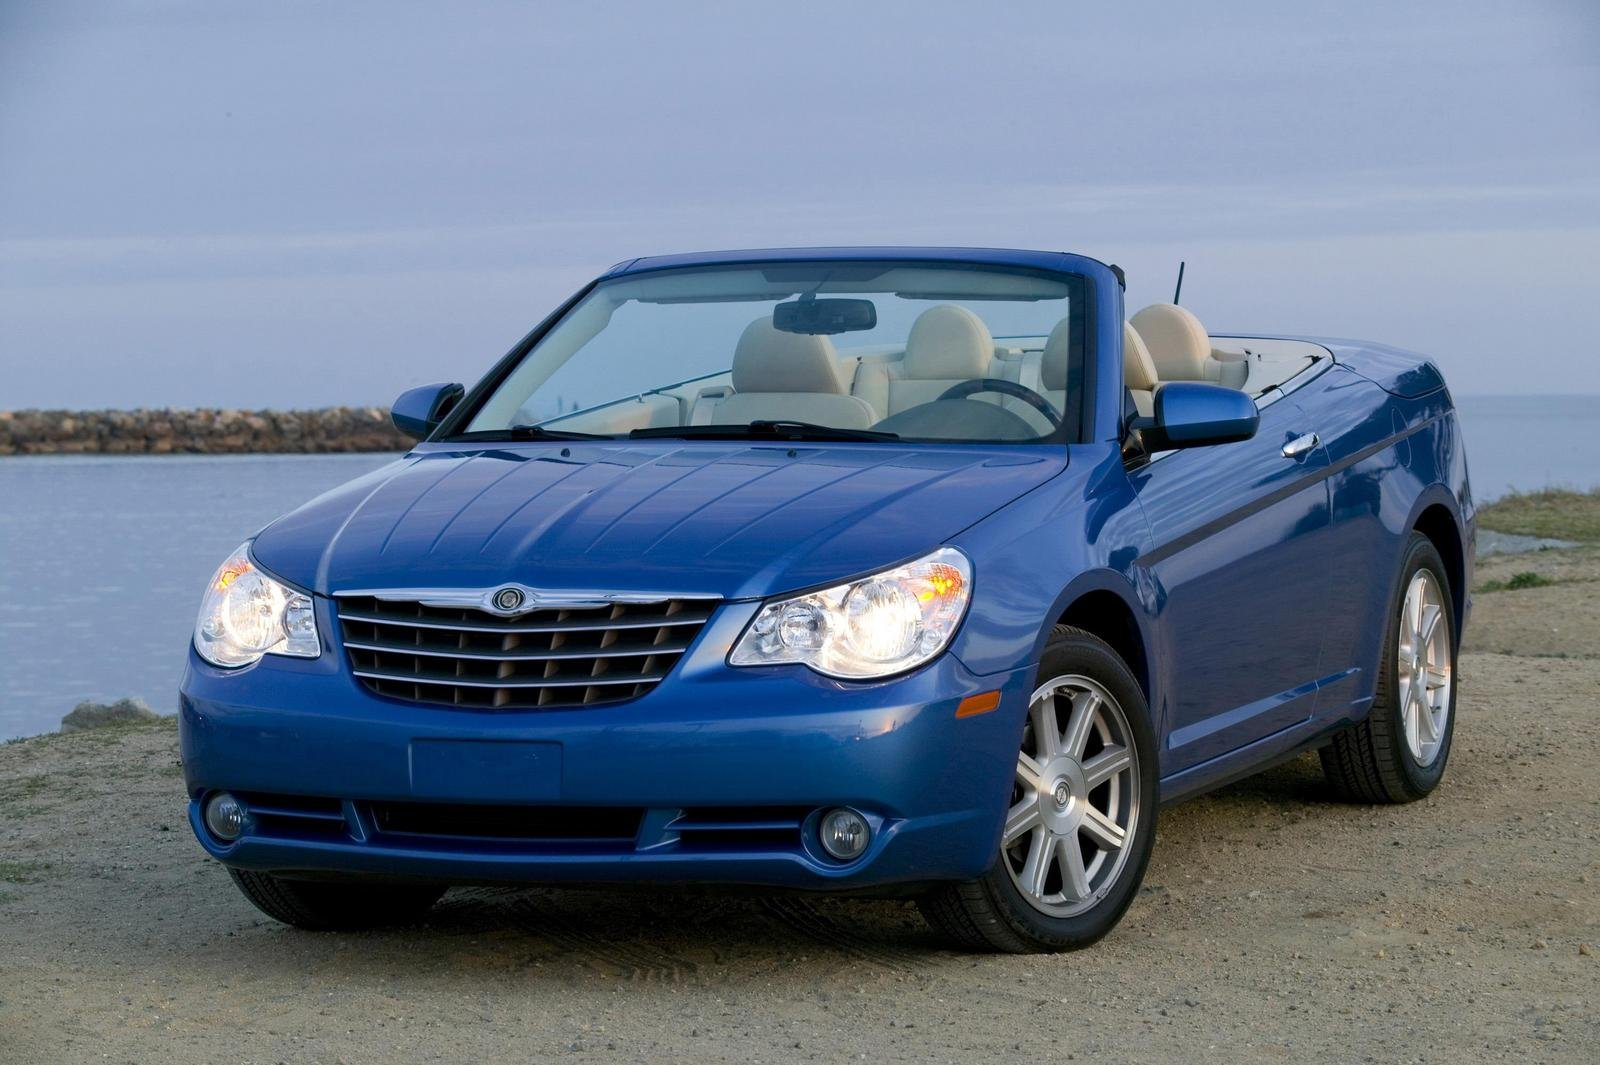 the winner of the 2007 ginn open gets an all new 2008 chrysler sebring convertible news top speed. Black Bedroom Furniture Sets. Home Design Ideas